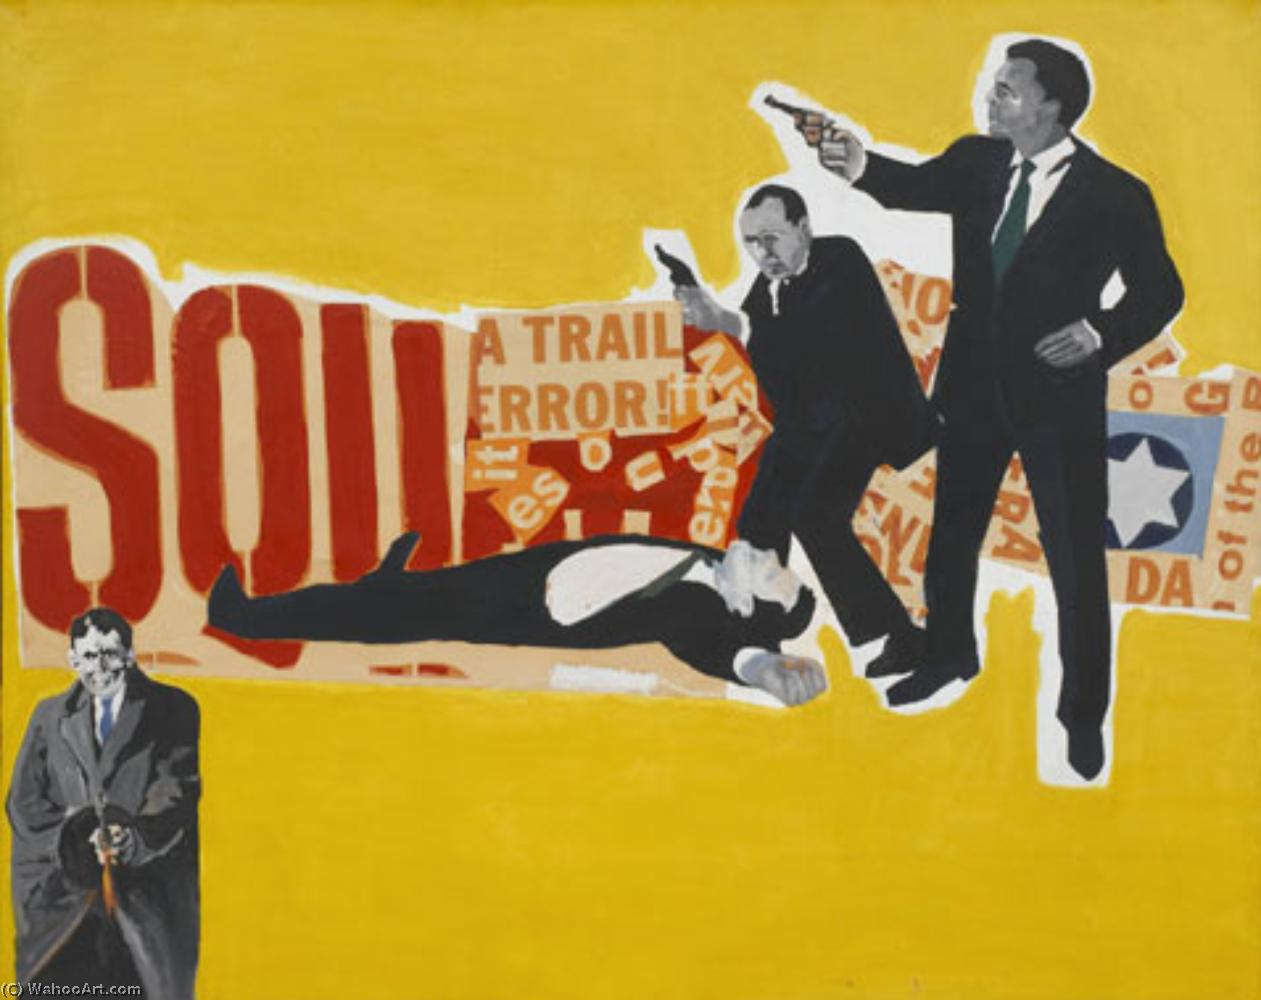 | The defenders by Rosalyn Drexler | BuyPopArt.com